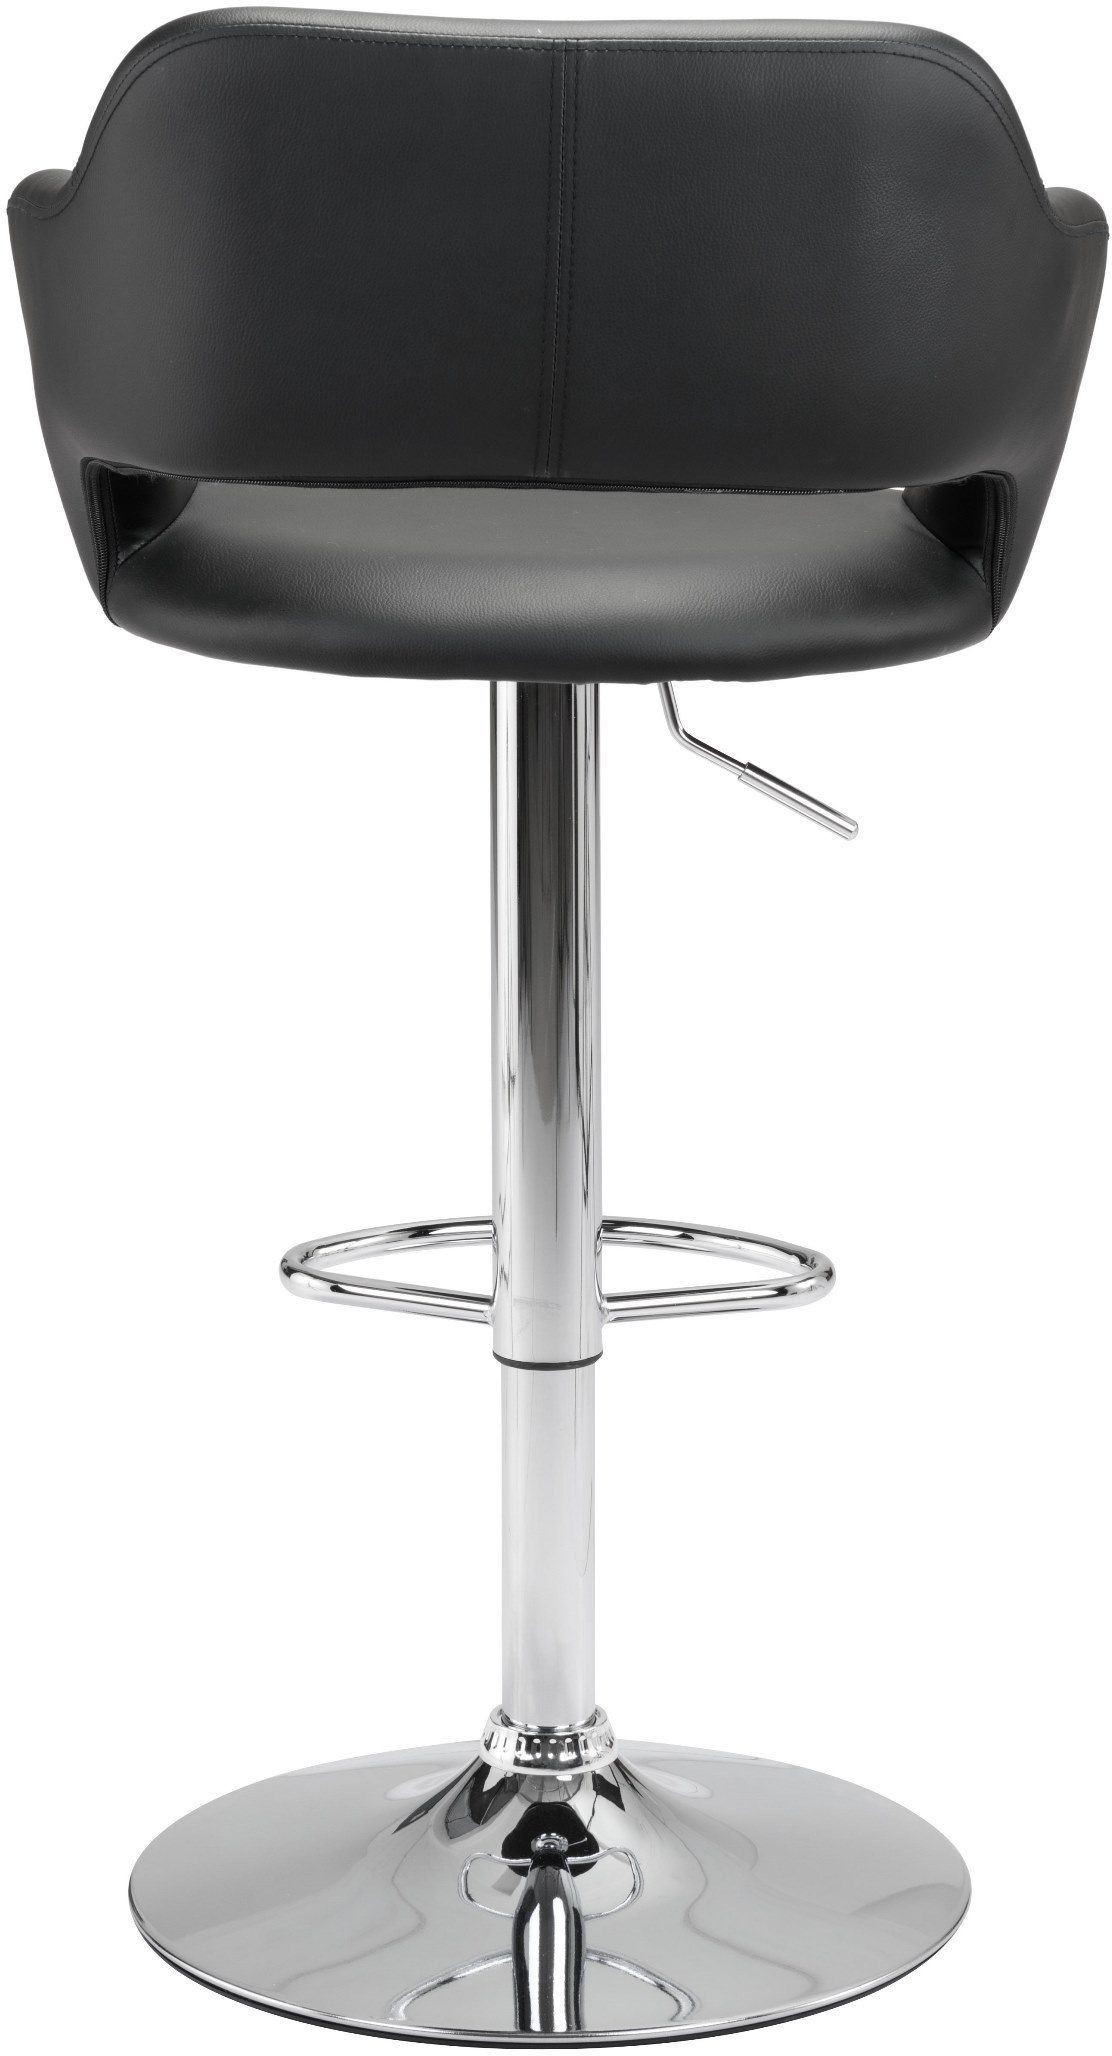 zuo hysteria bar chair